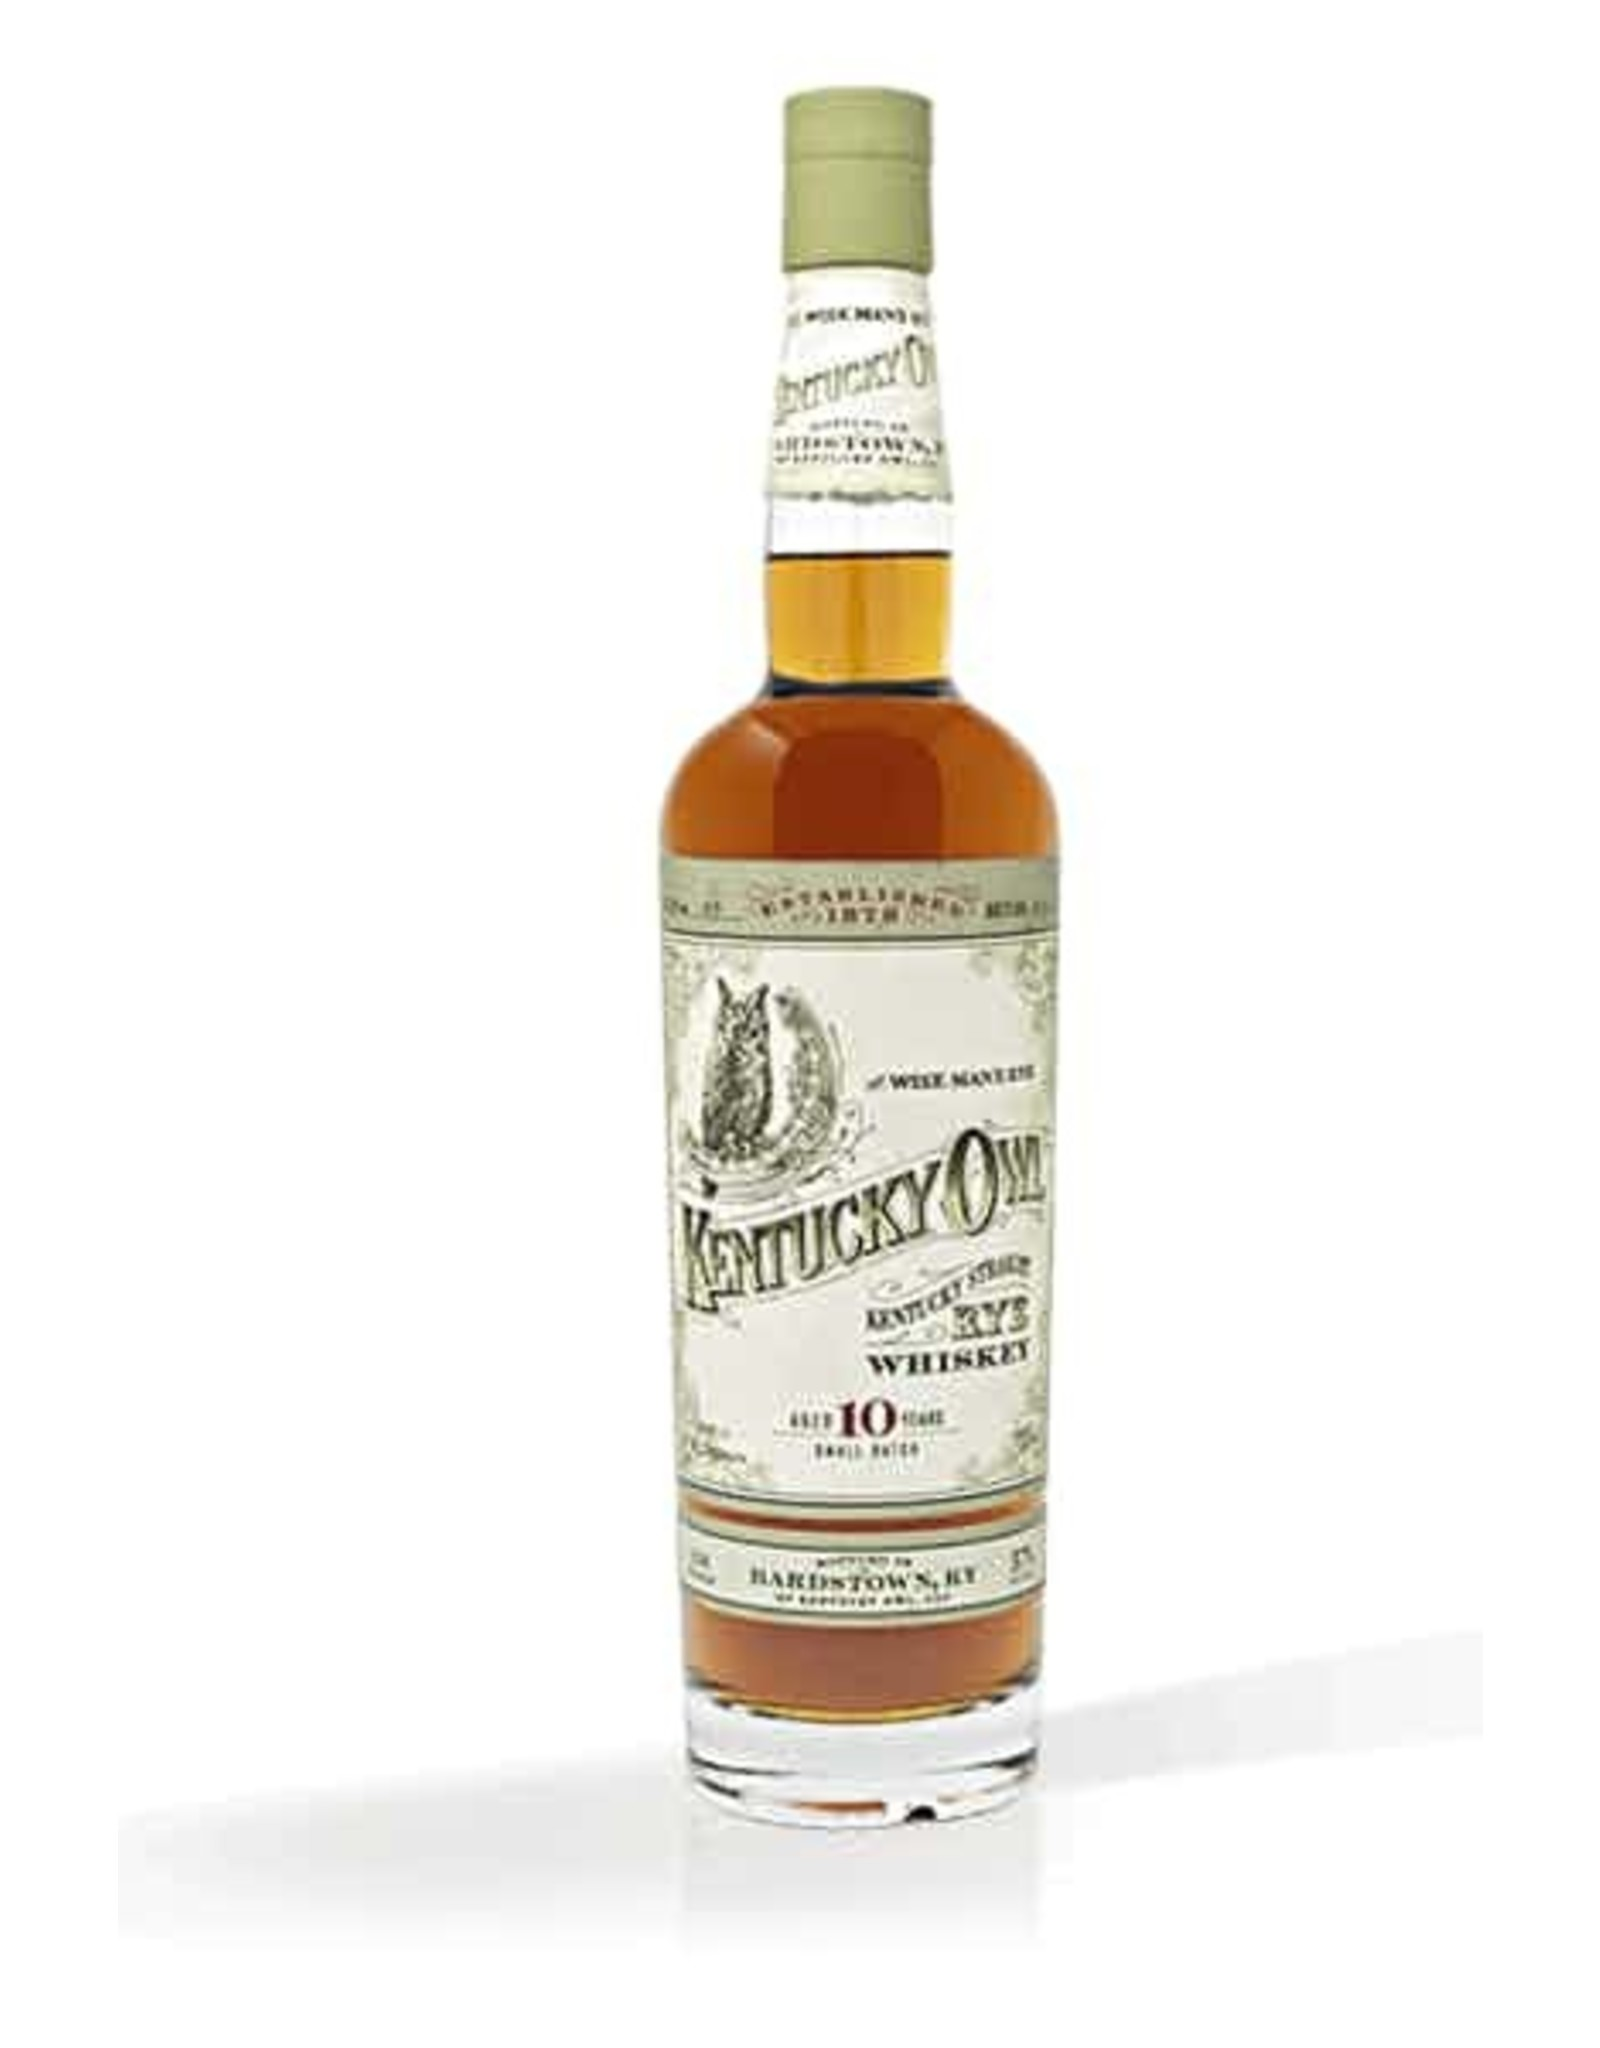 Kentucky Owl Batch #3 10 year old Rye Whiskey